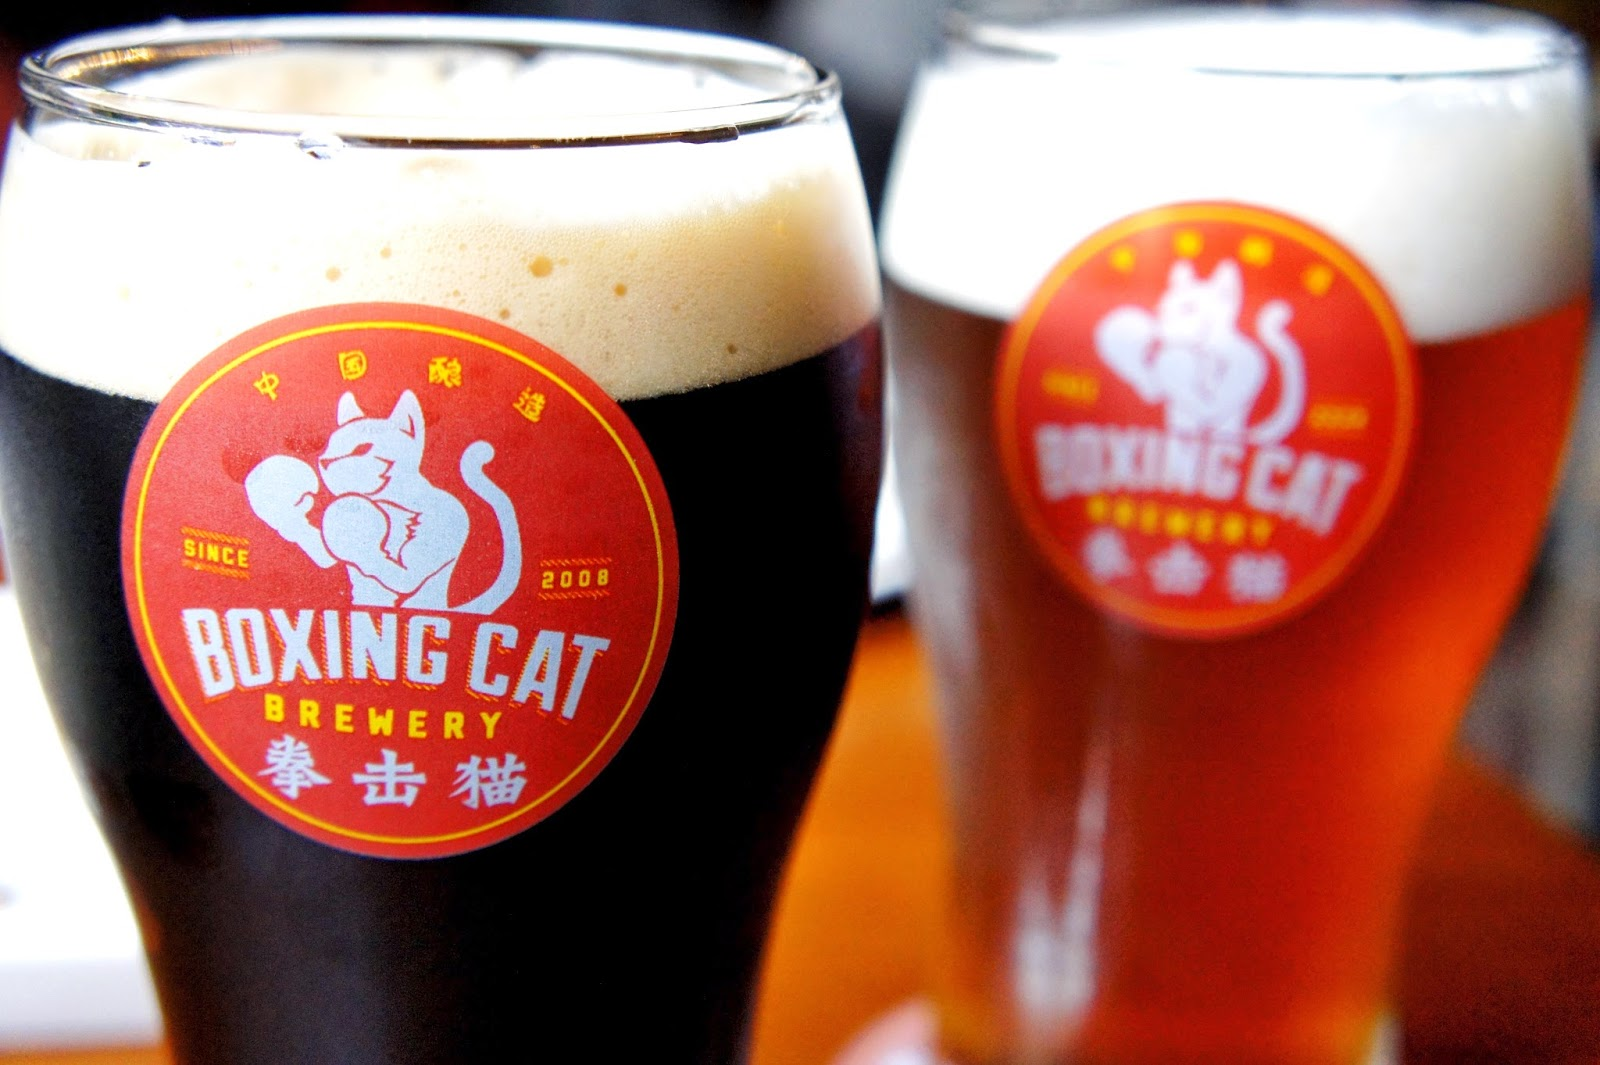 Craft and crafty beer in China